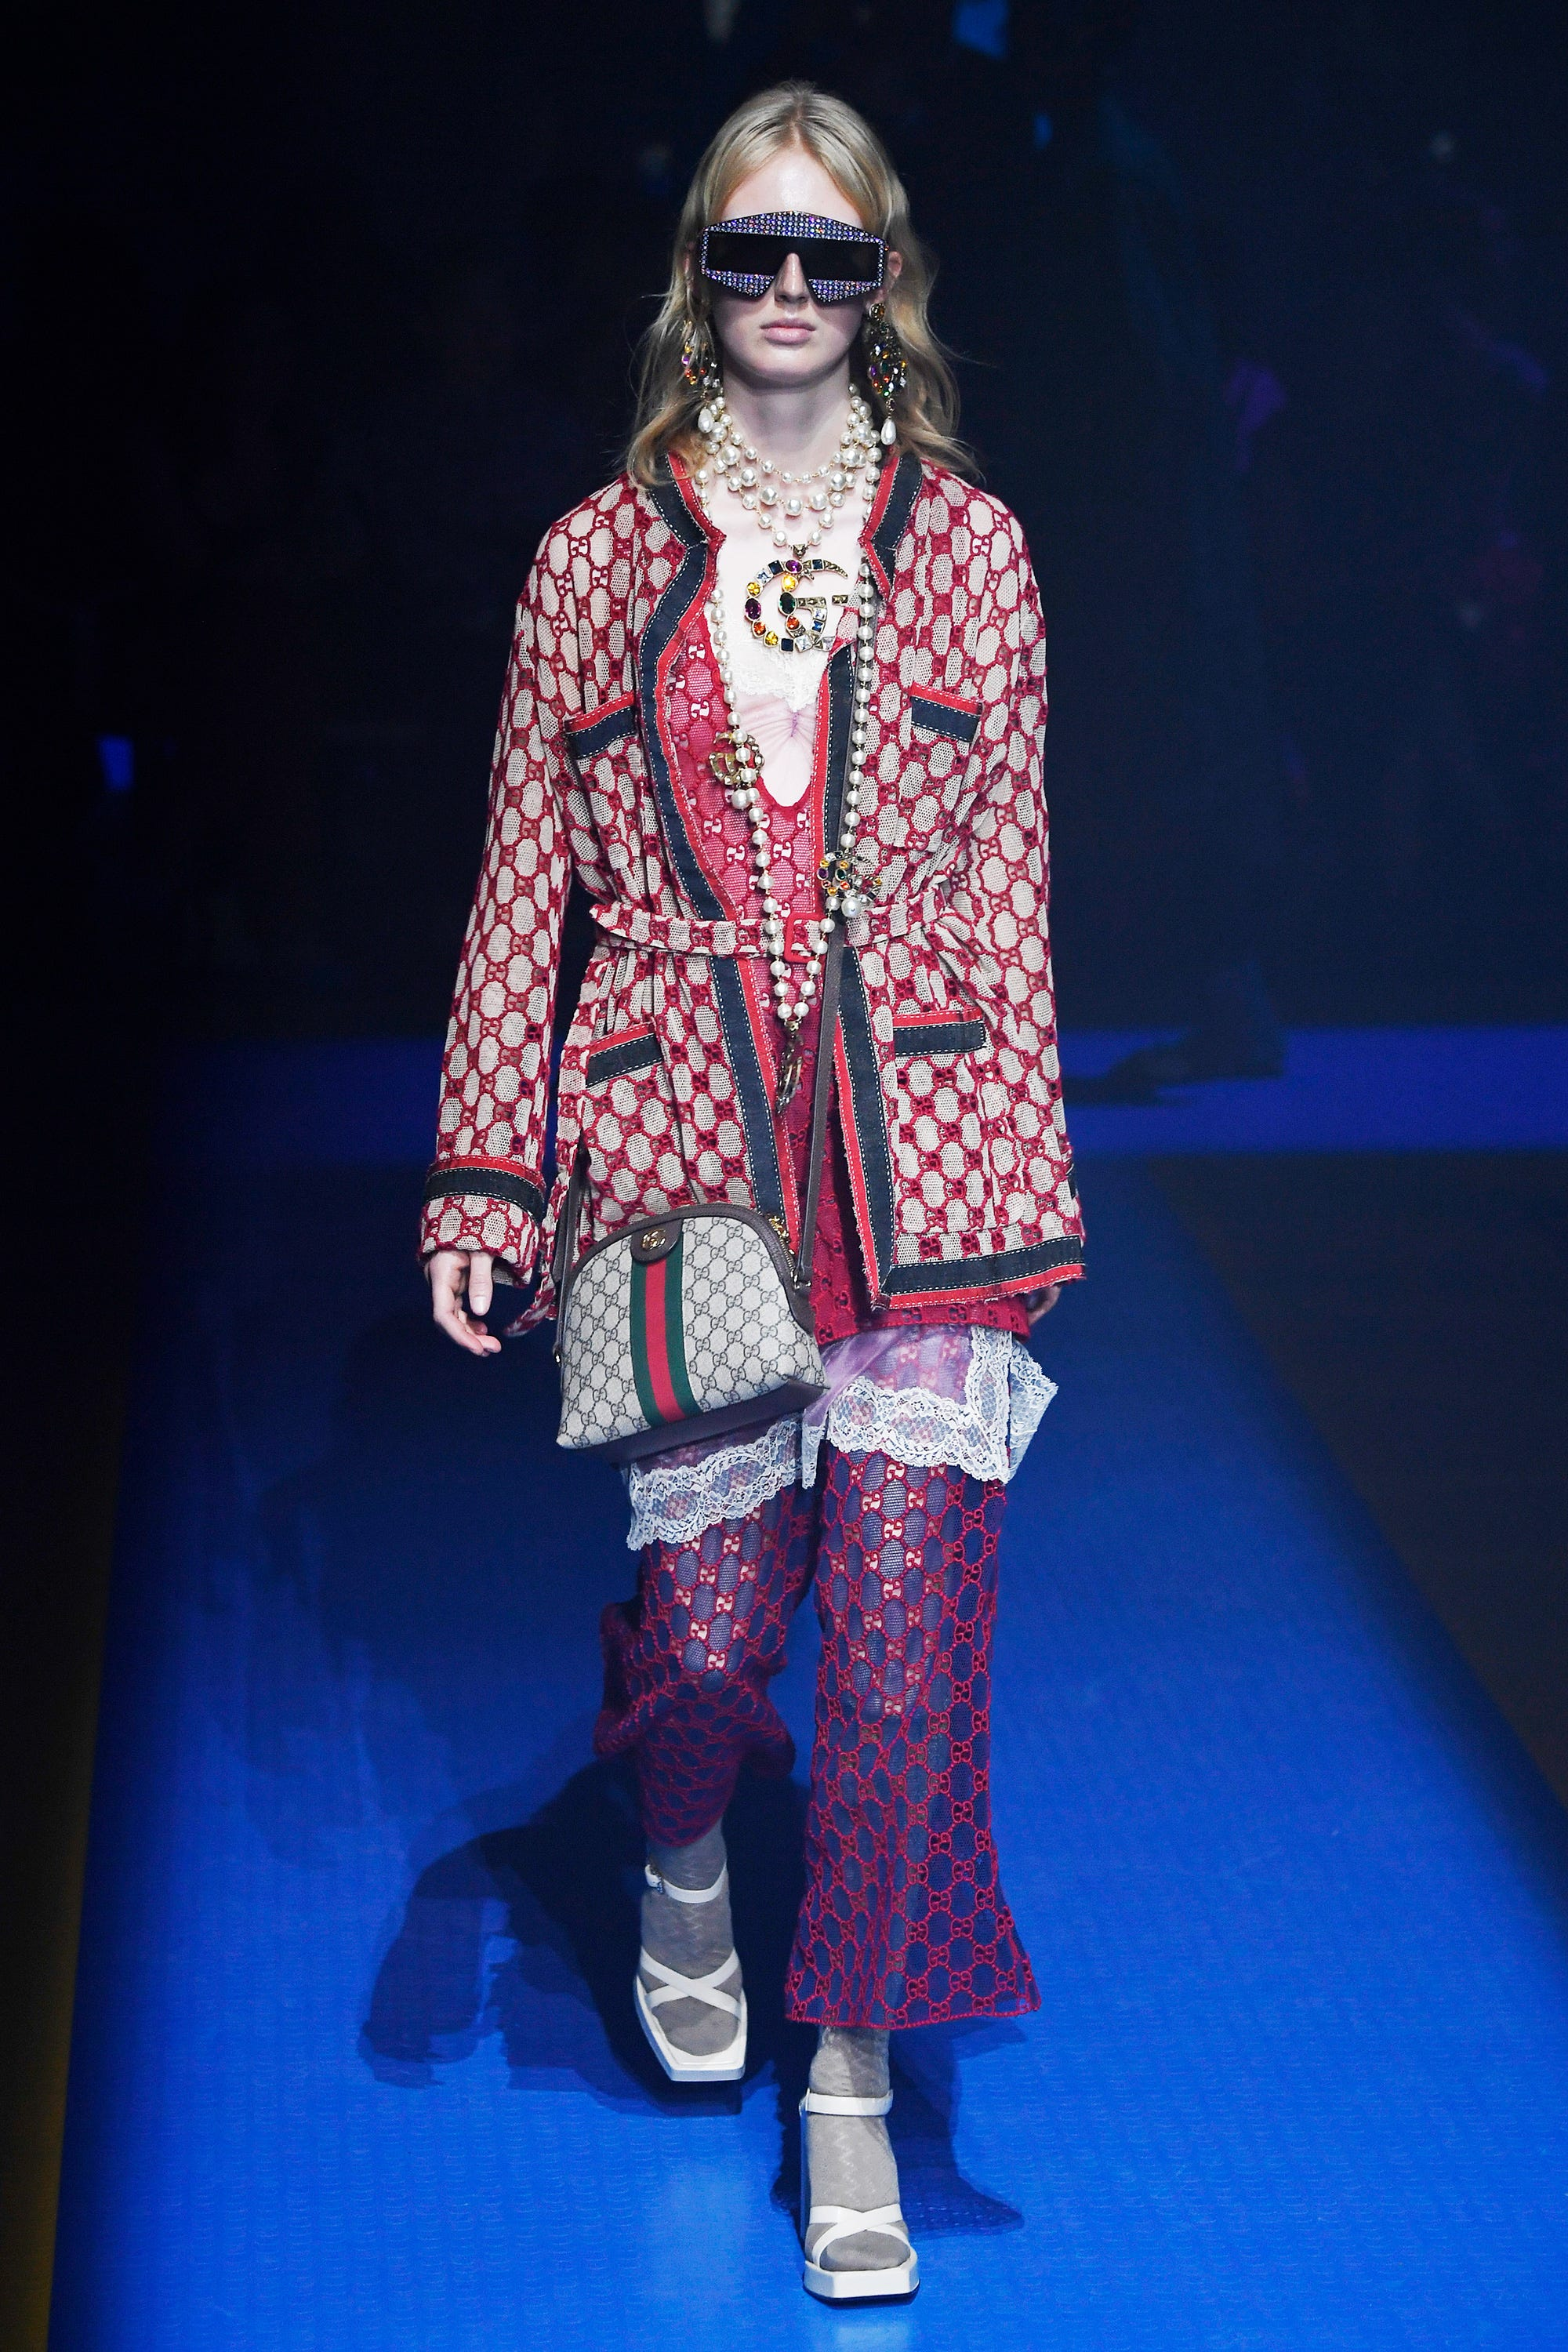 bc9ec41b838 Gucci Spring Summer 2018 Ready-To-Wear Show Report